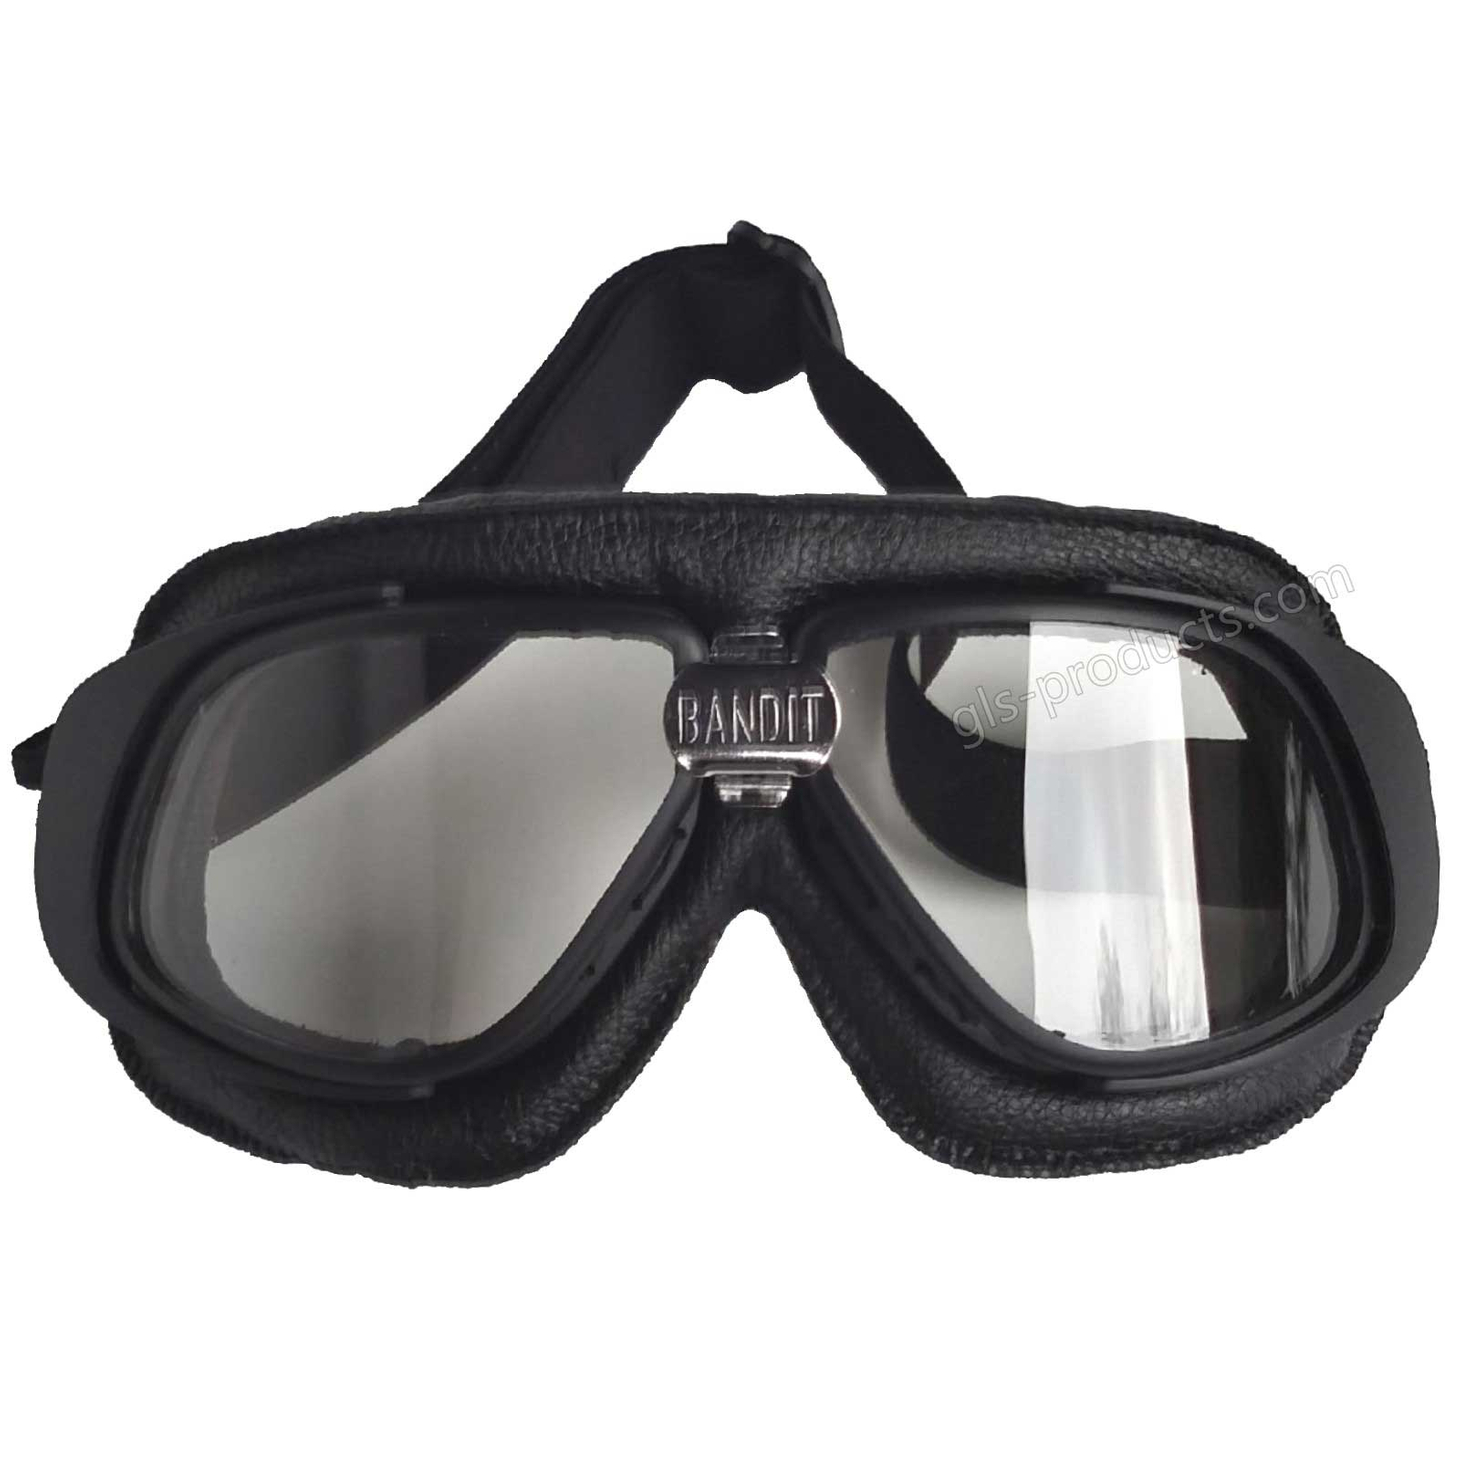 Bandit Motorcycle Glasses Goggles black – Picture 2